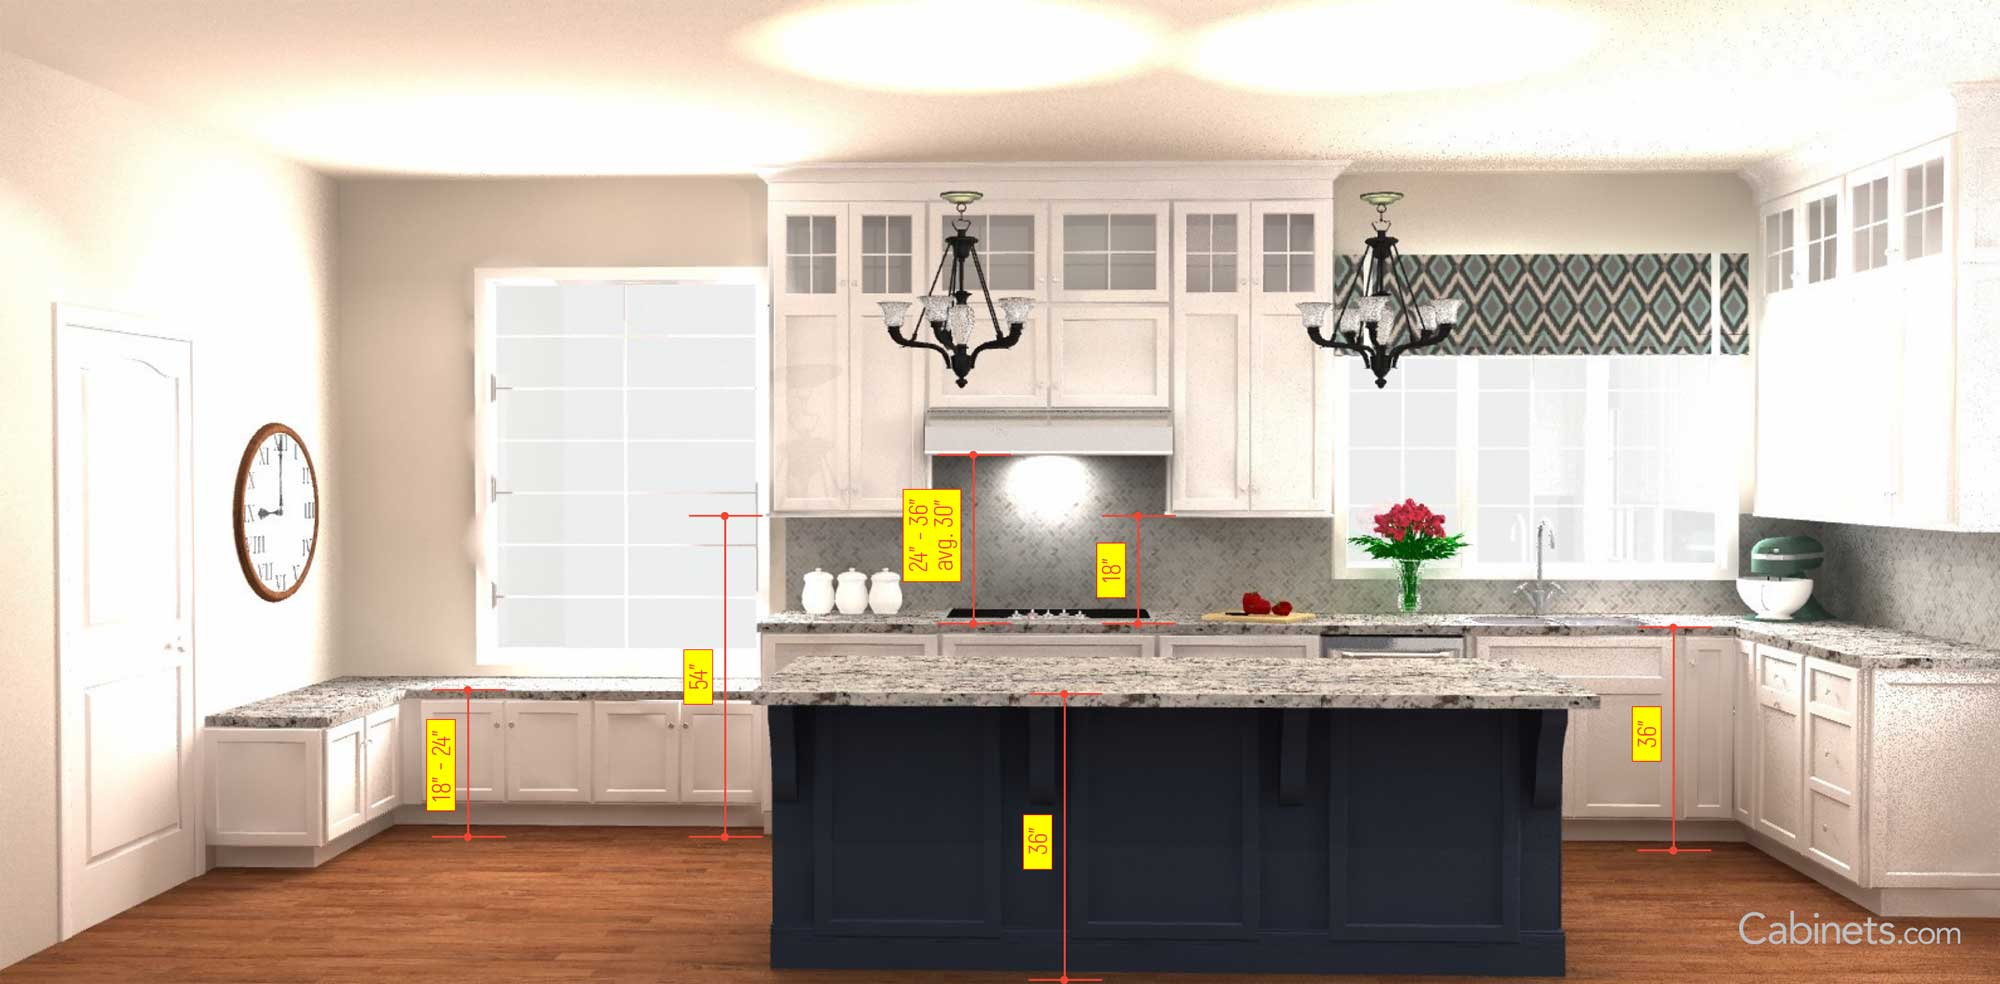 Important Kitchen Dimensions - Start Planning - Cabinets.com